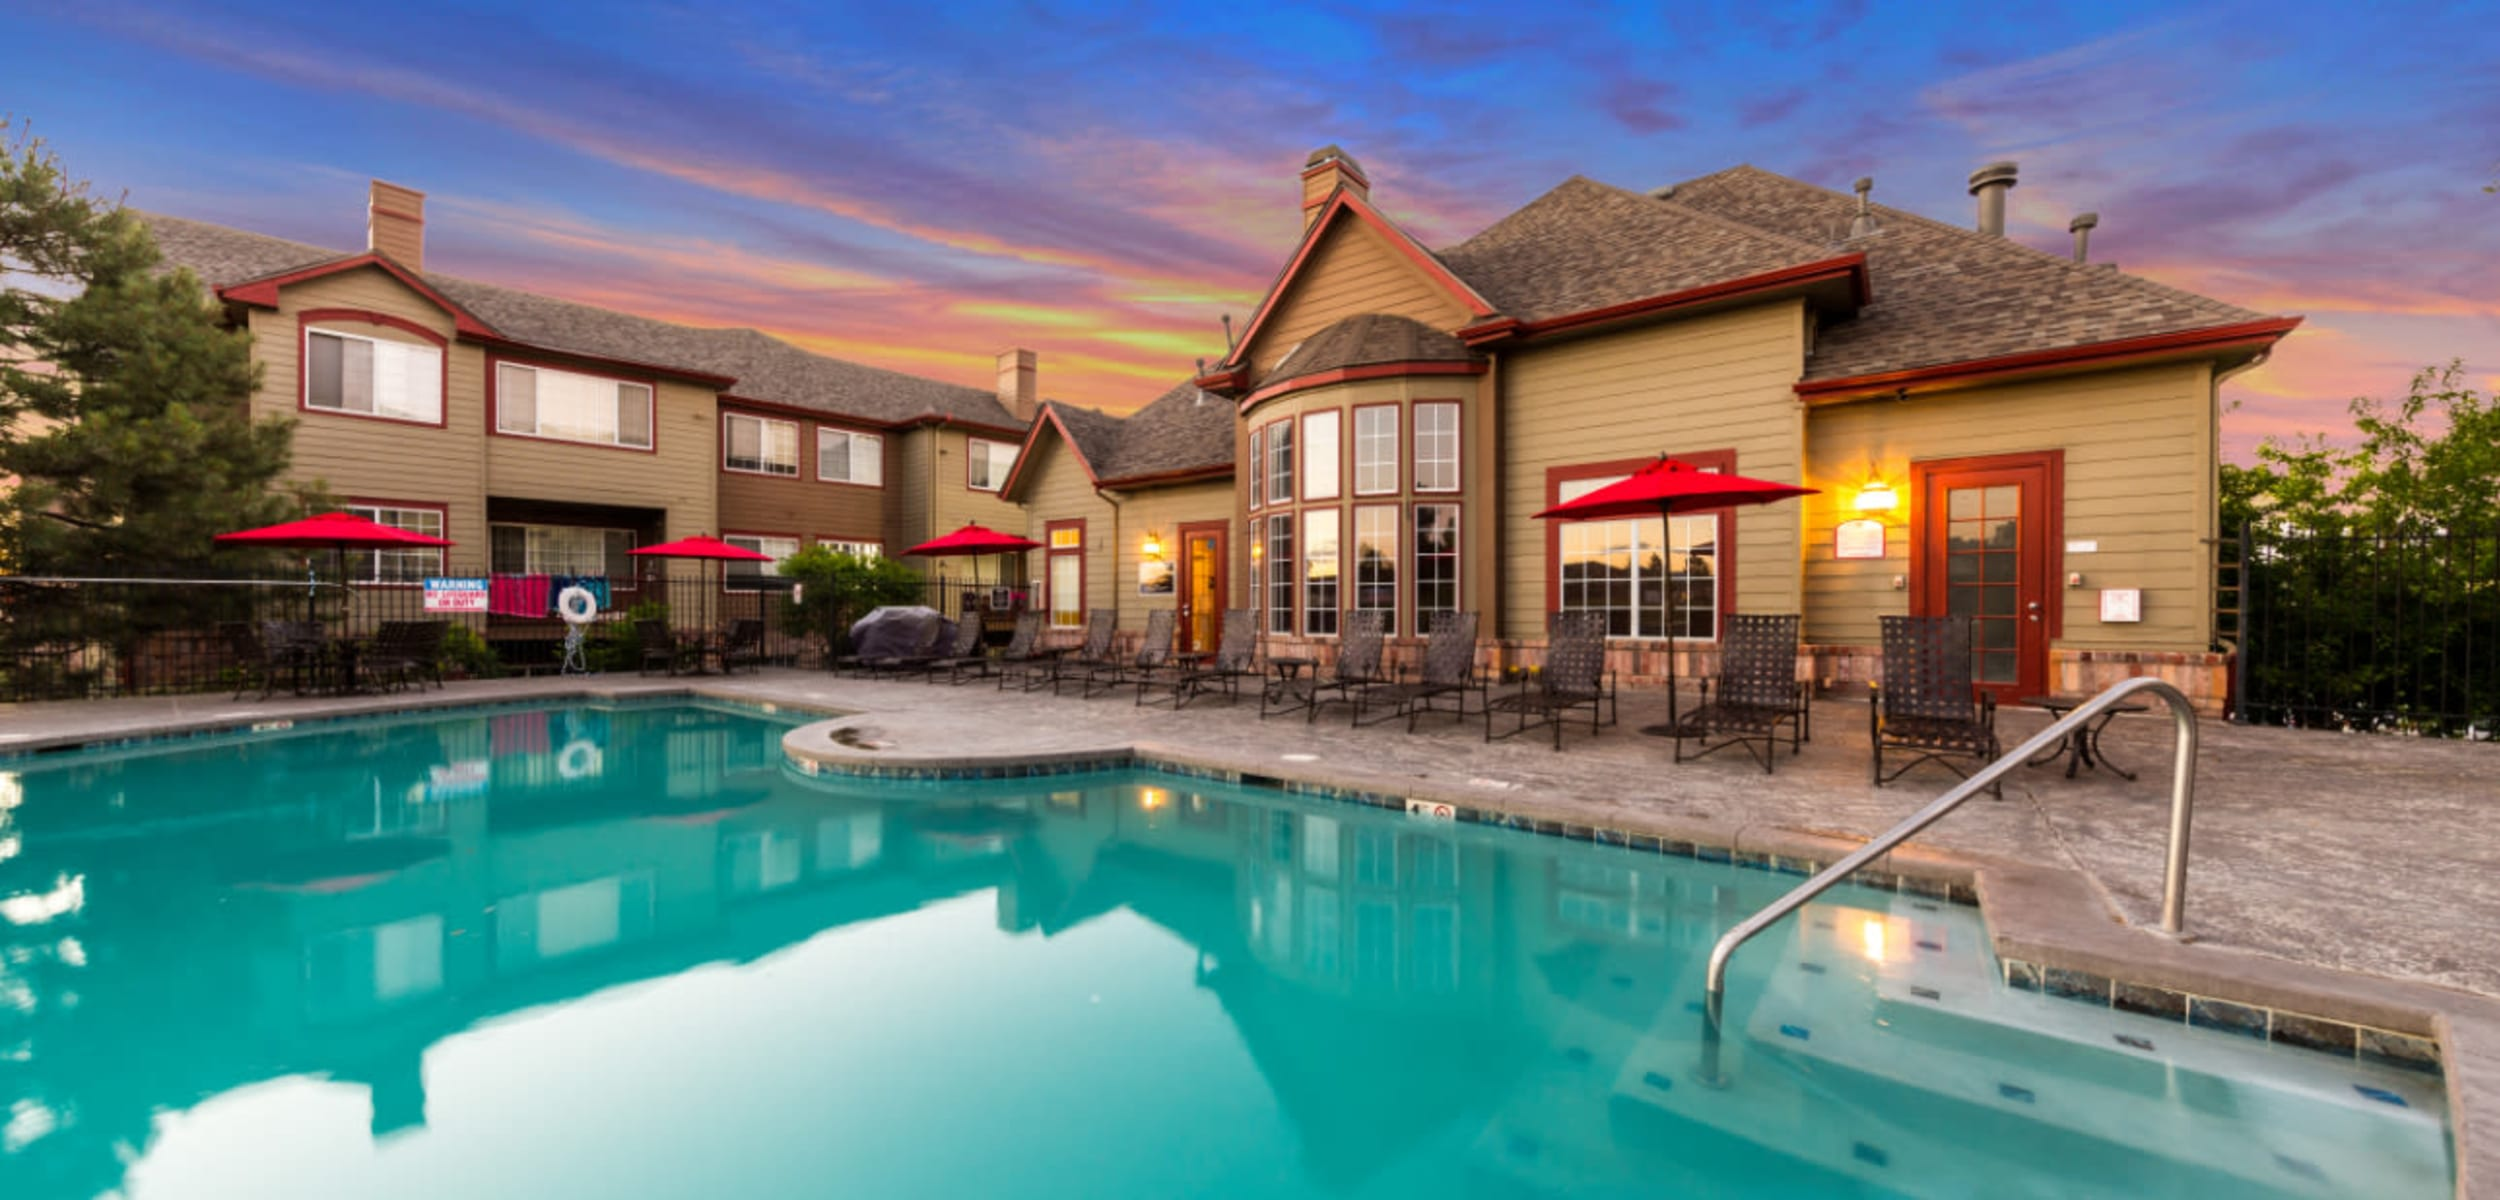 Sparkling pool at The Links at Plum Creek in Castle Rock, Colorado